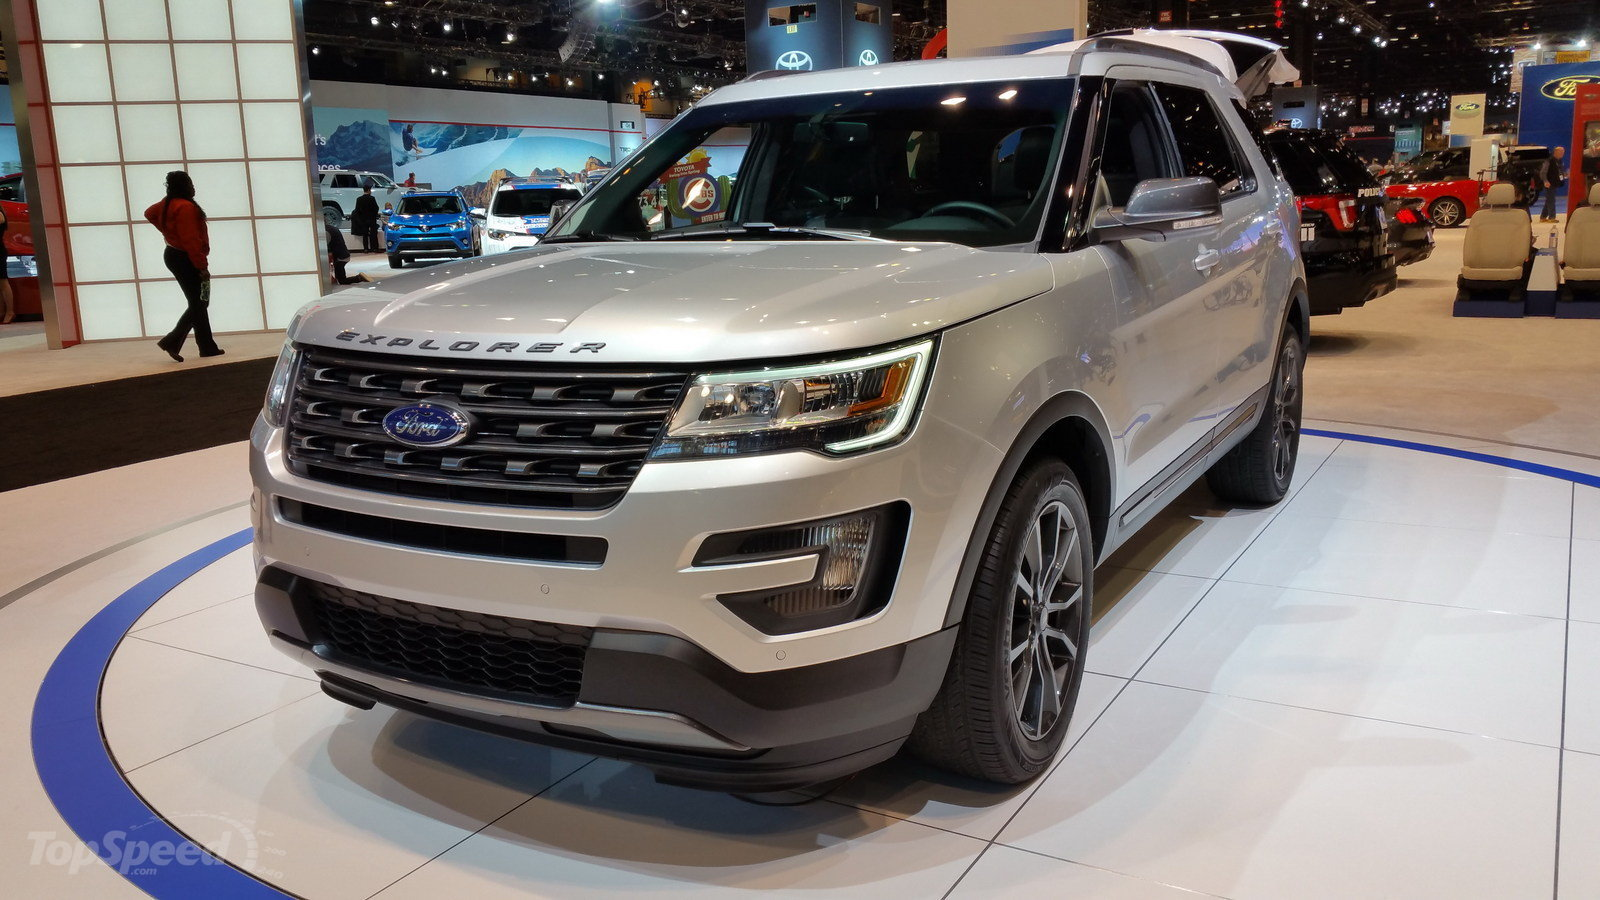 2017 ford explorer xlt sport appearance package picture 665413 car review top speed. Black Bedroom Furniture Sets. Home Design Ideas